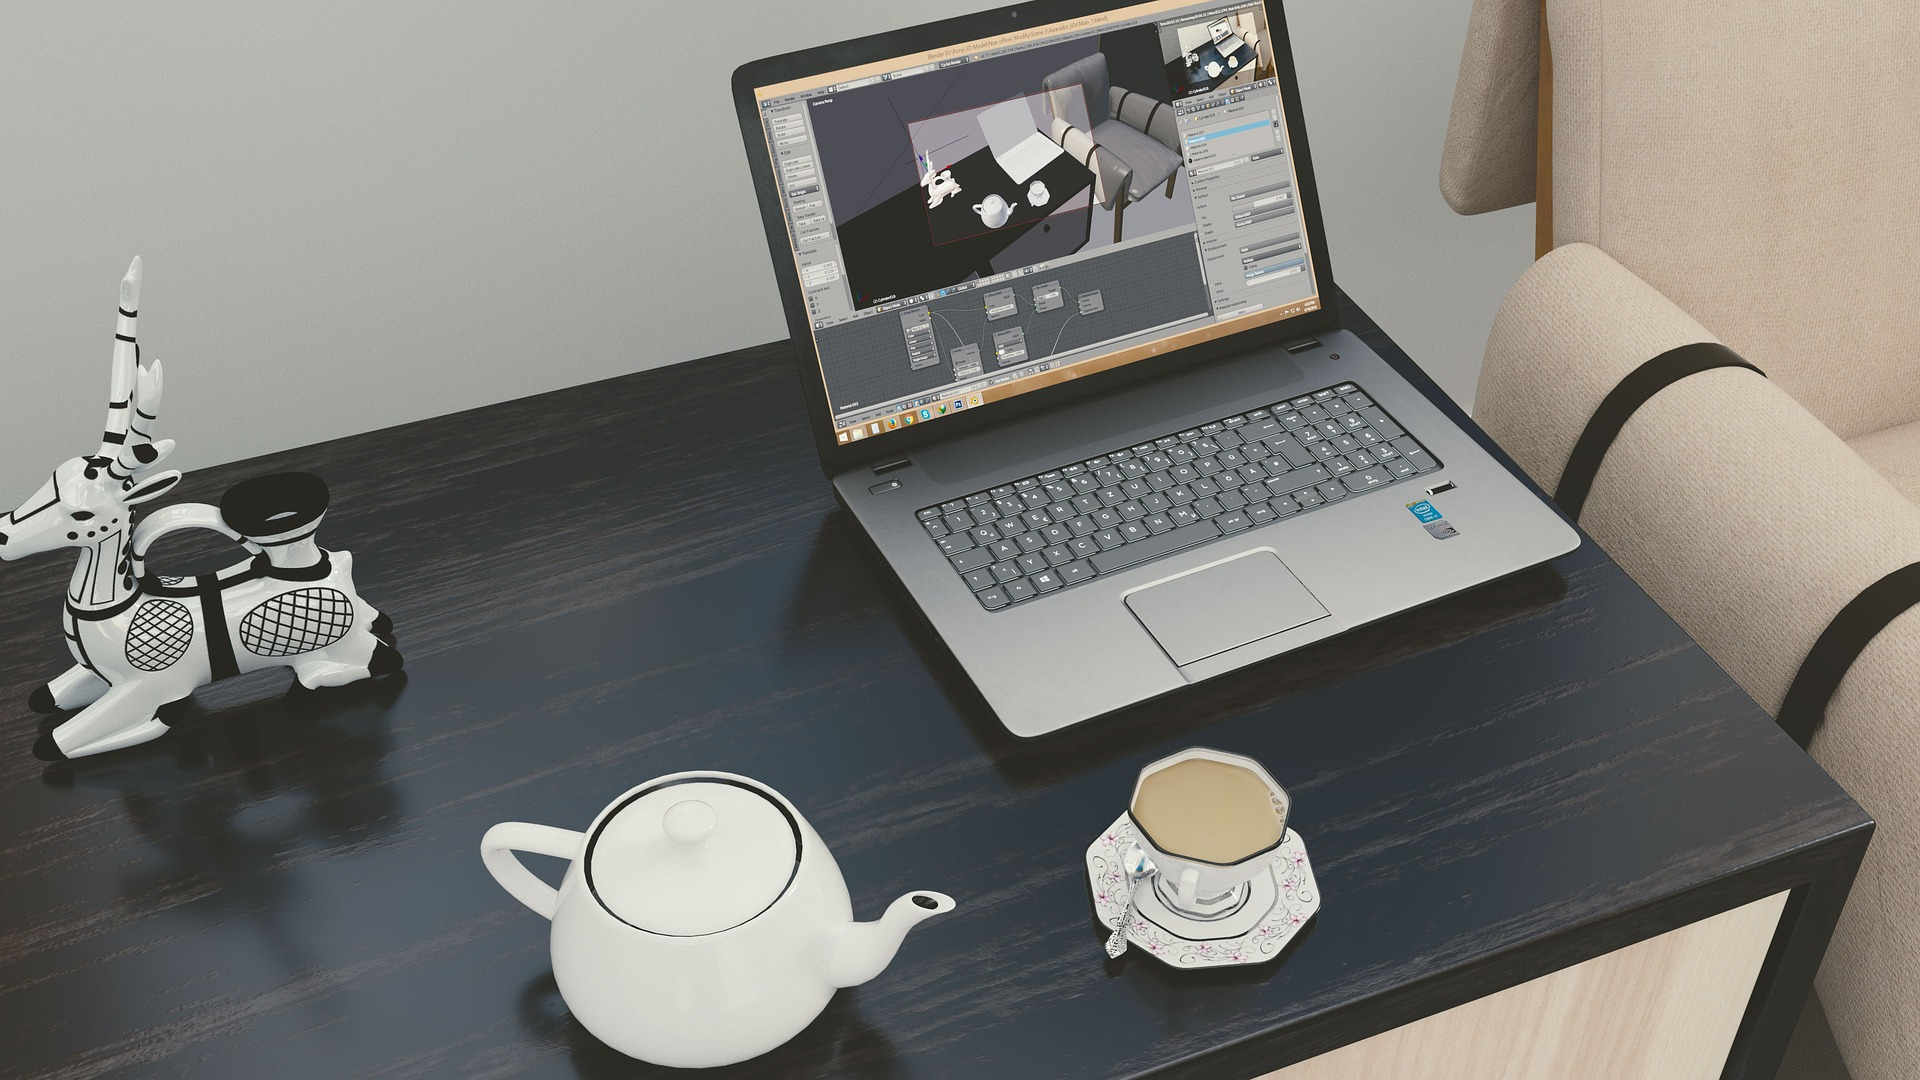 Cup of tea next to laptop on desk